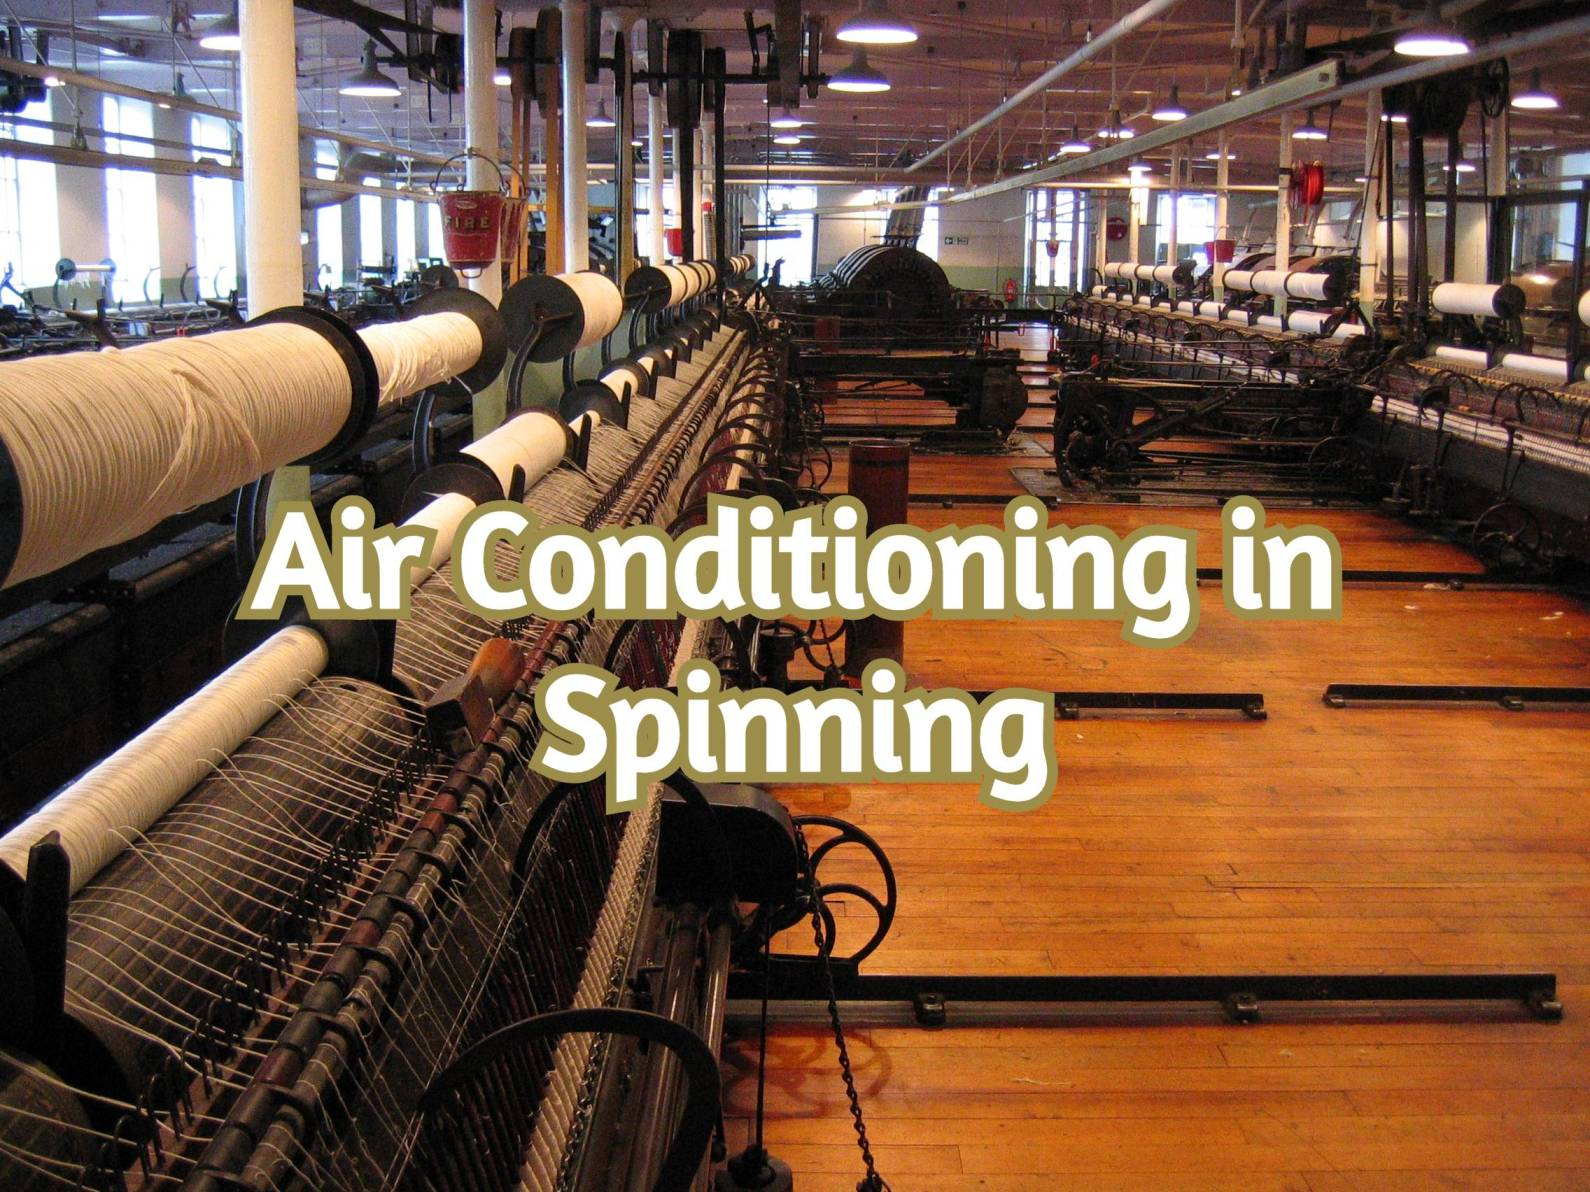 Air Conditioning in Spinning